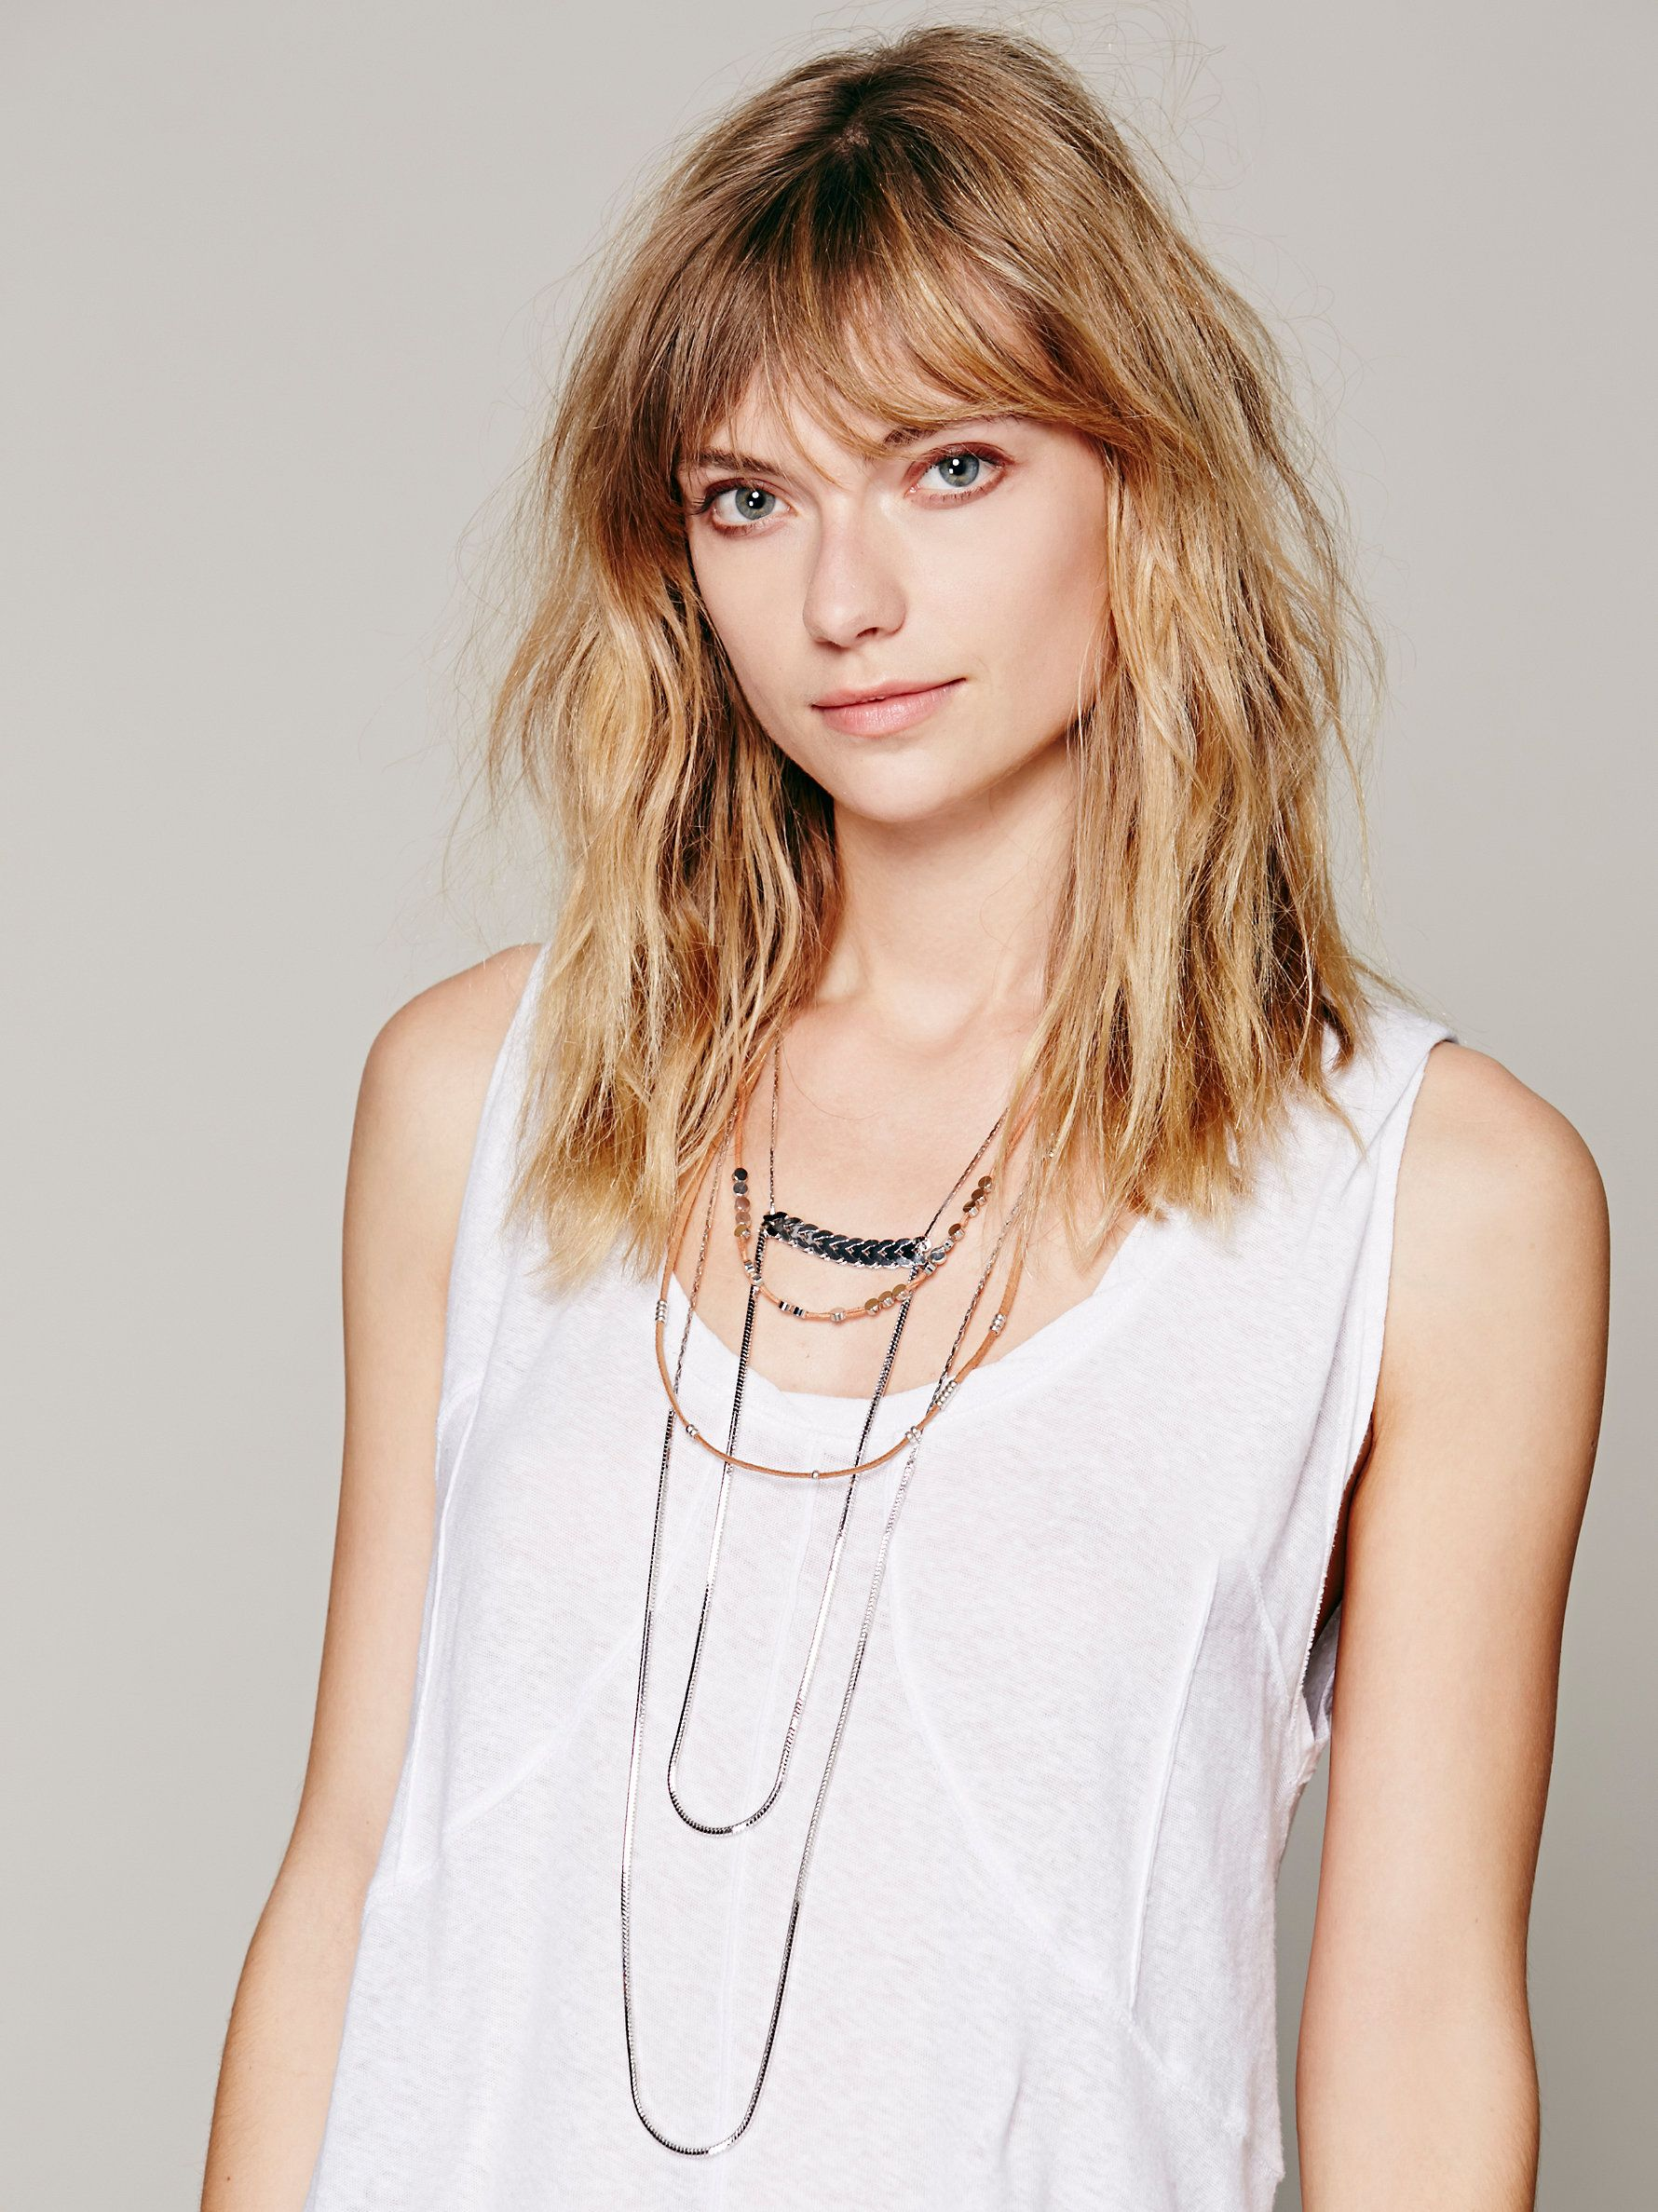 Free People Groupie Layered Necklace, €111.42